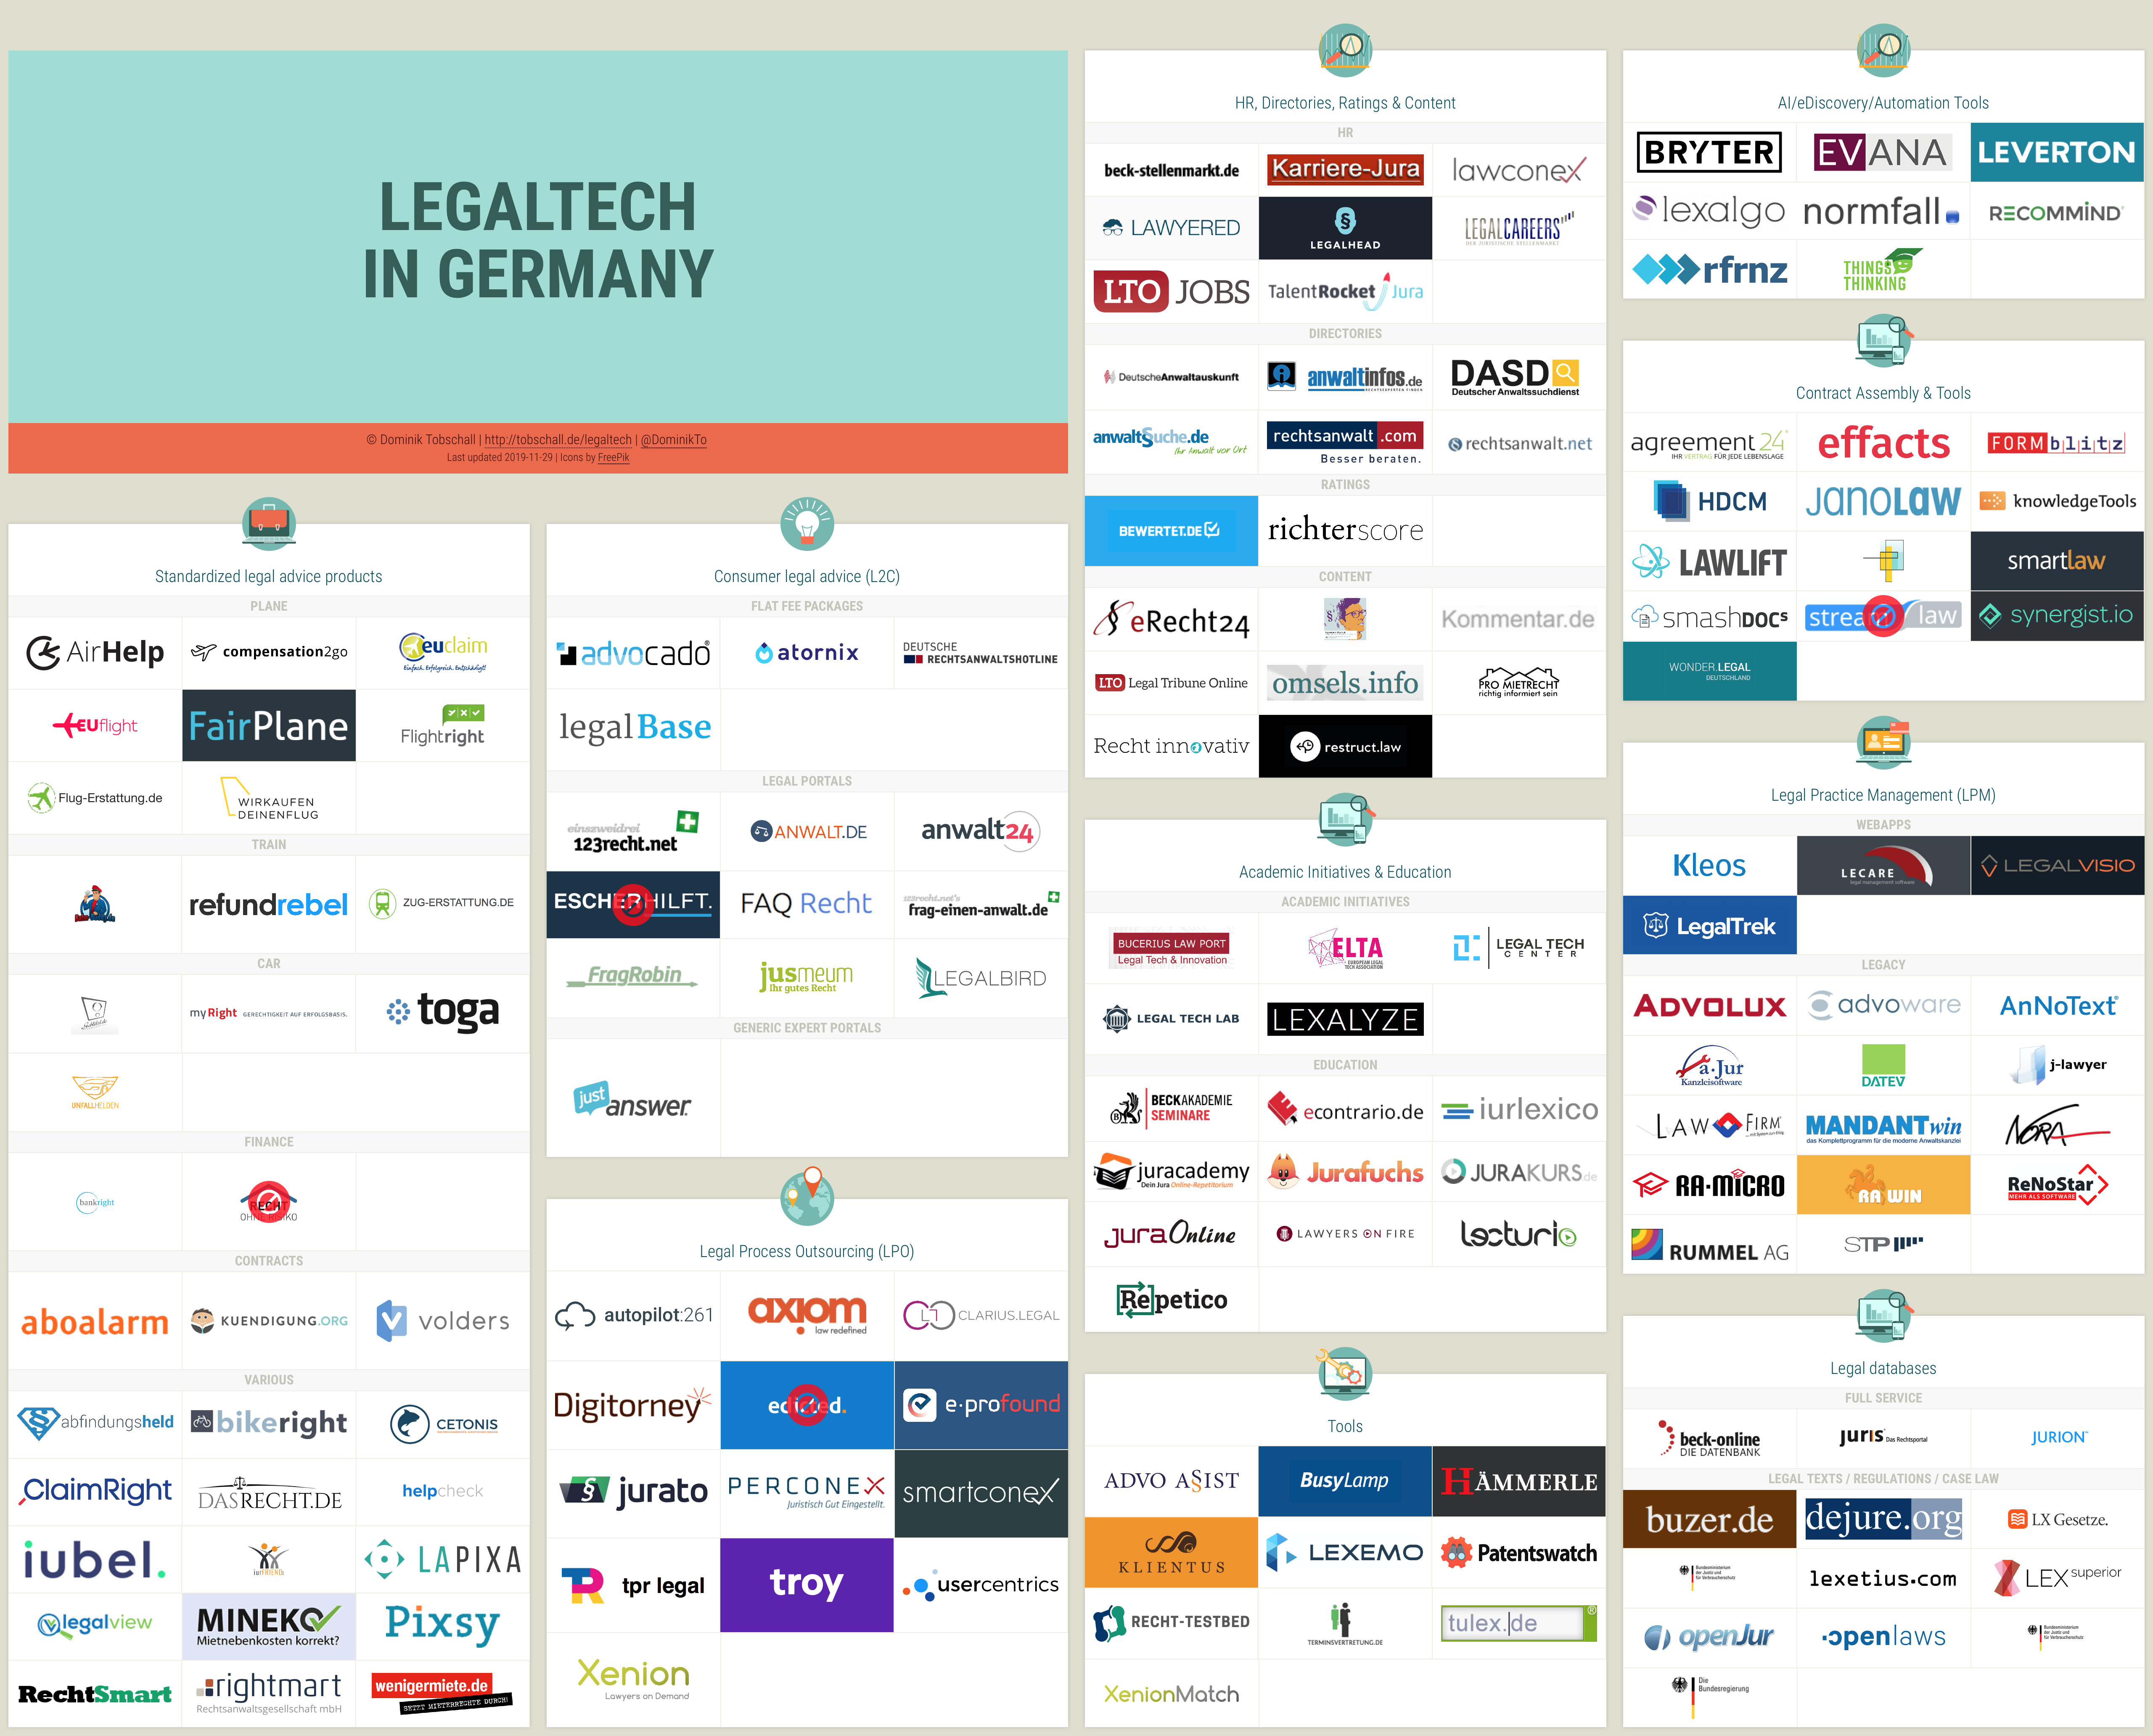 German LegalTech Overview